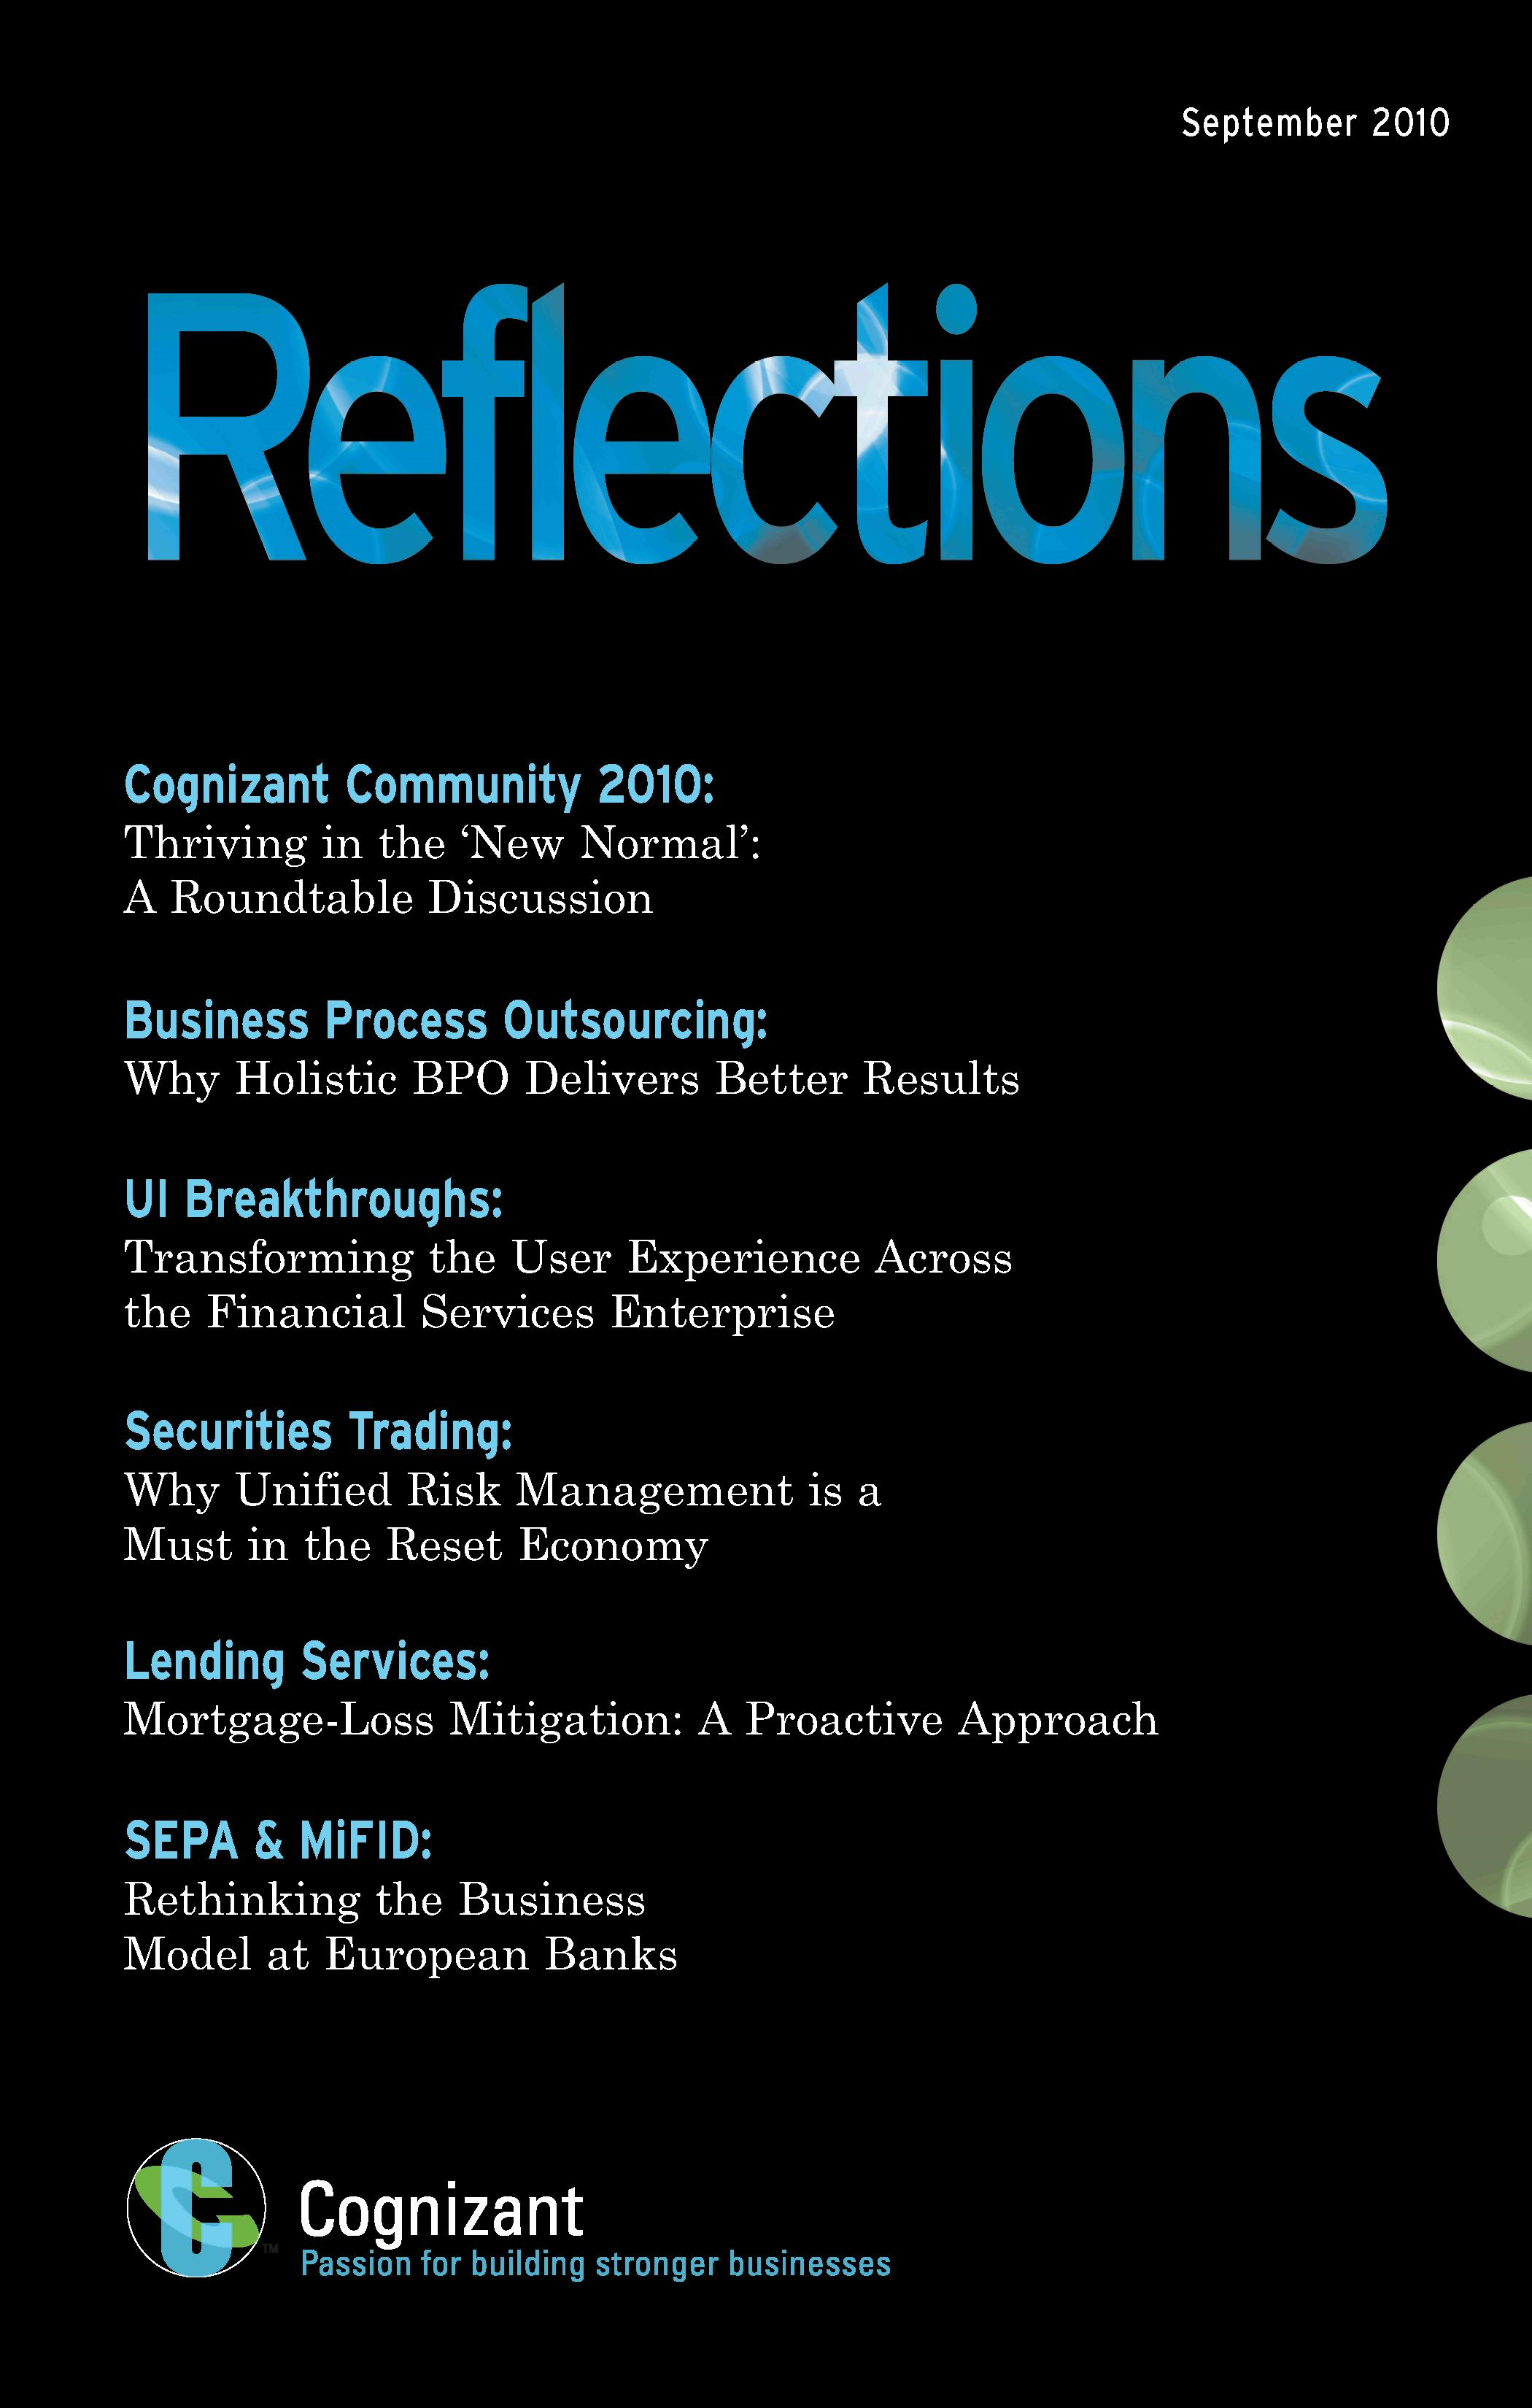 Reflections Journal Issue 1: A Journal for the Banking & Financial Services Industry